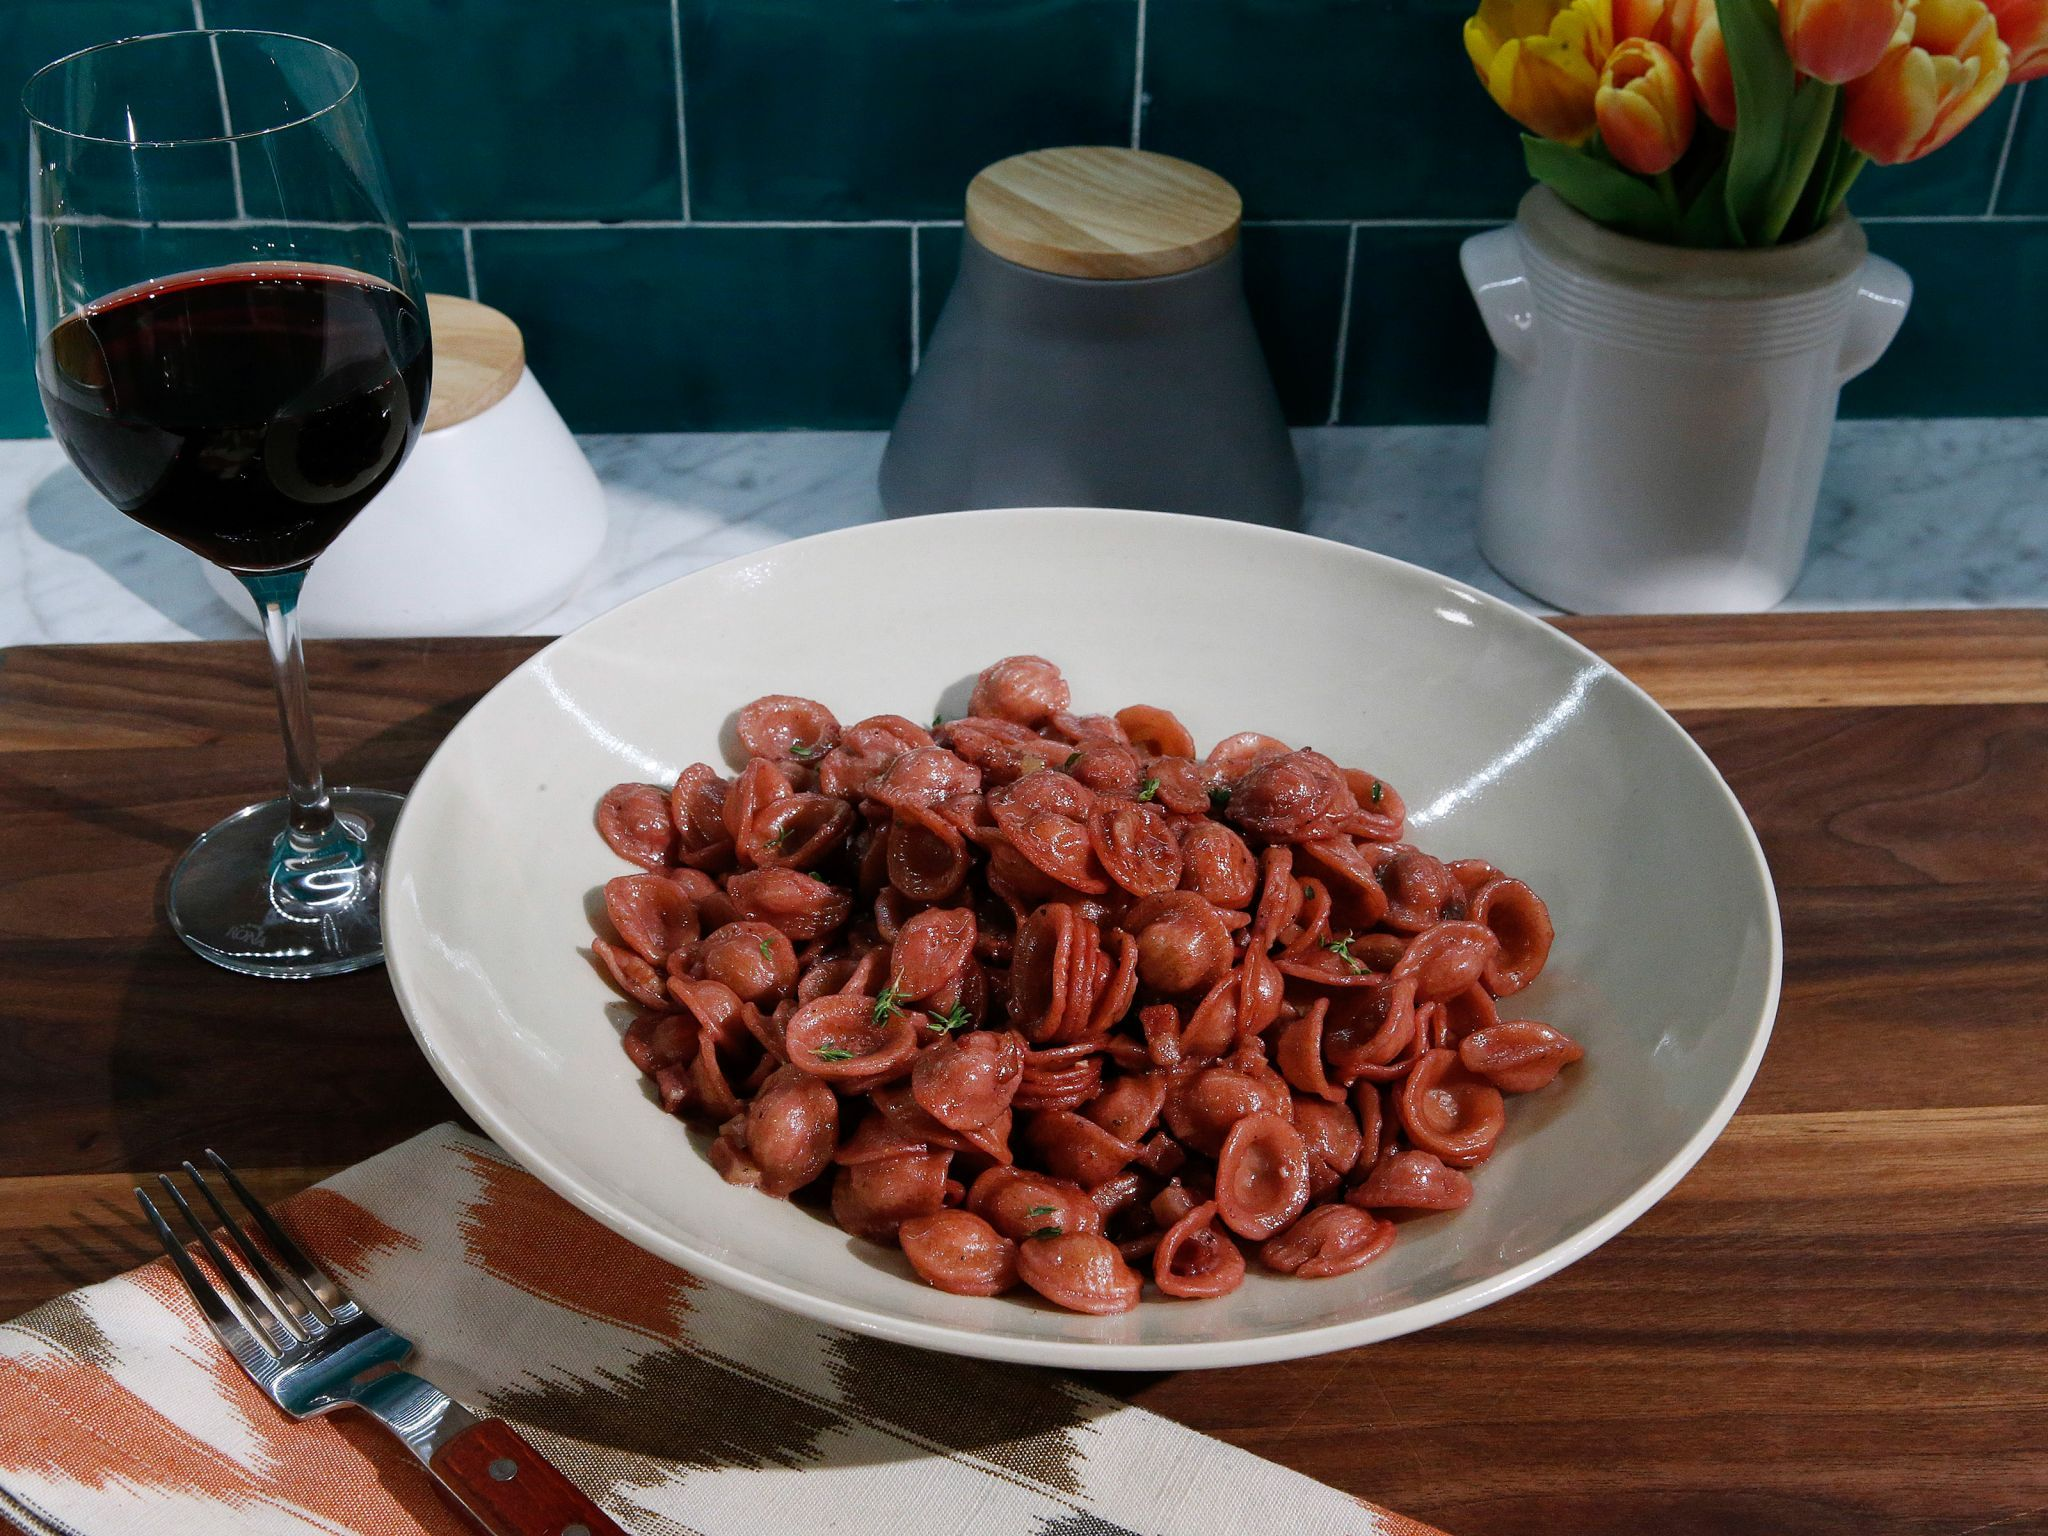 Drunken Red Wine Pasta